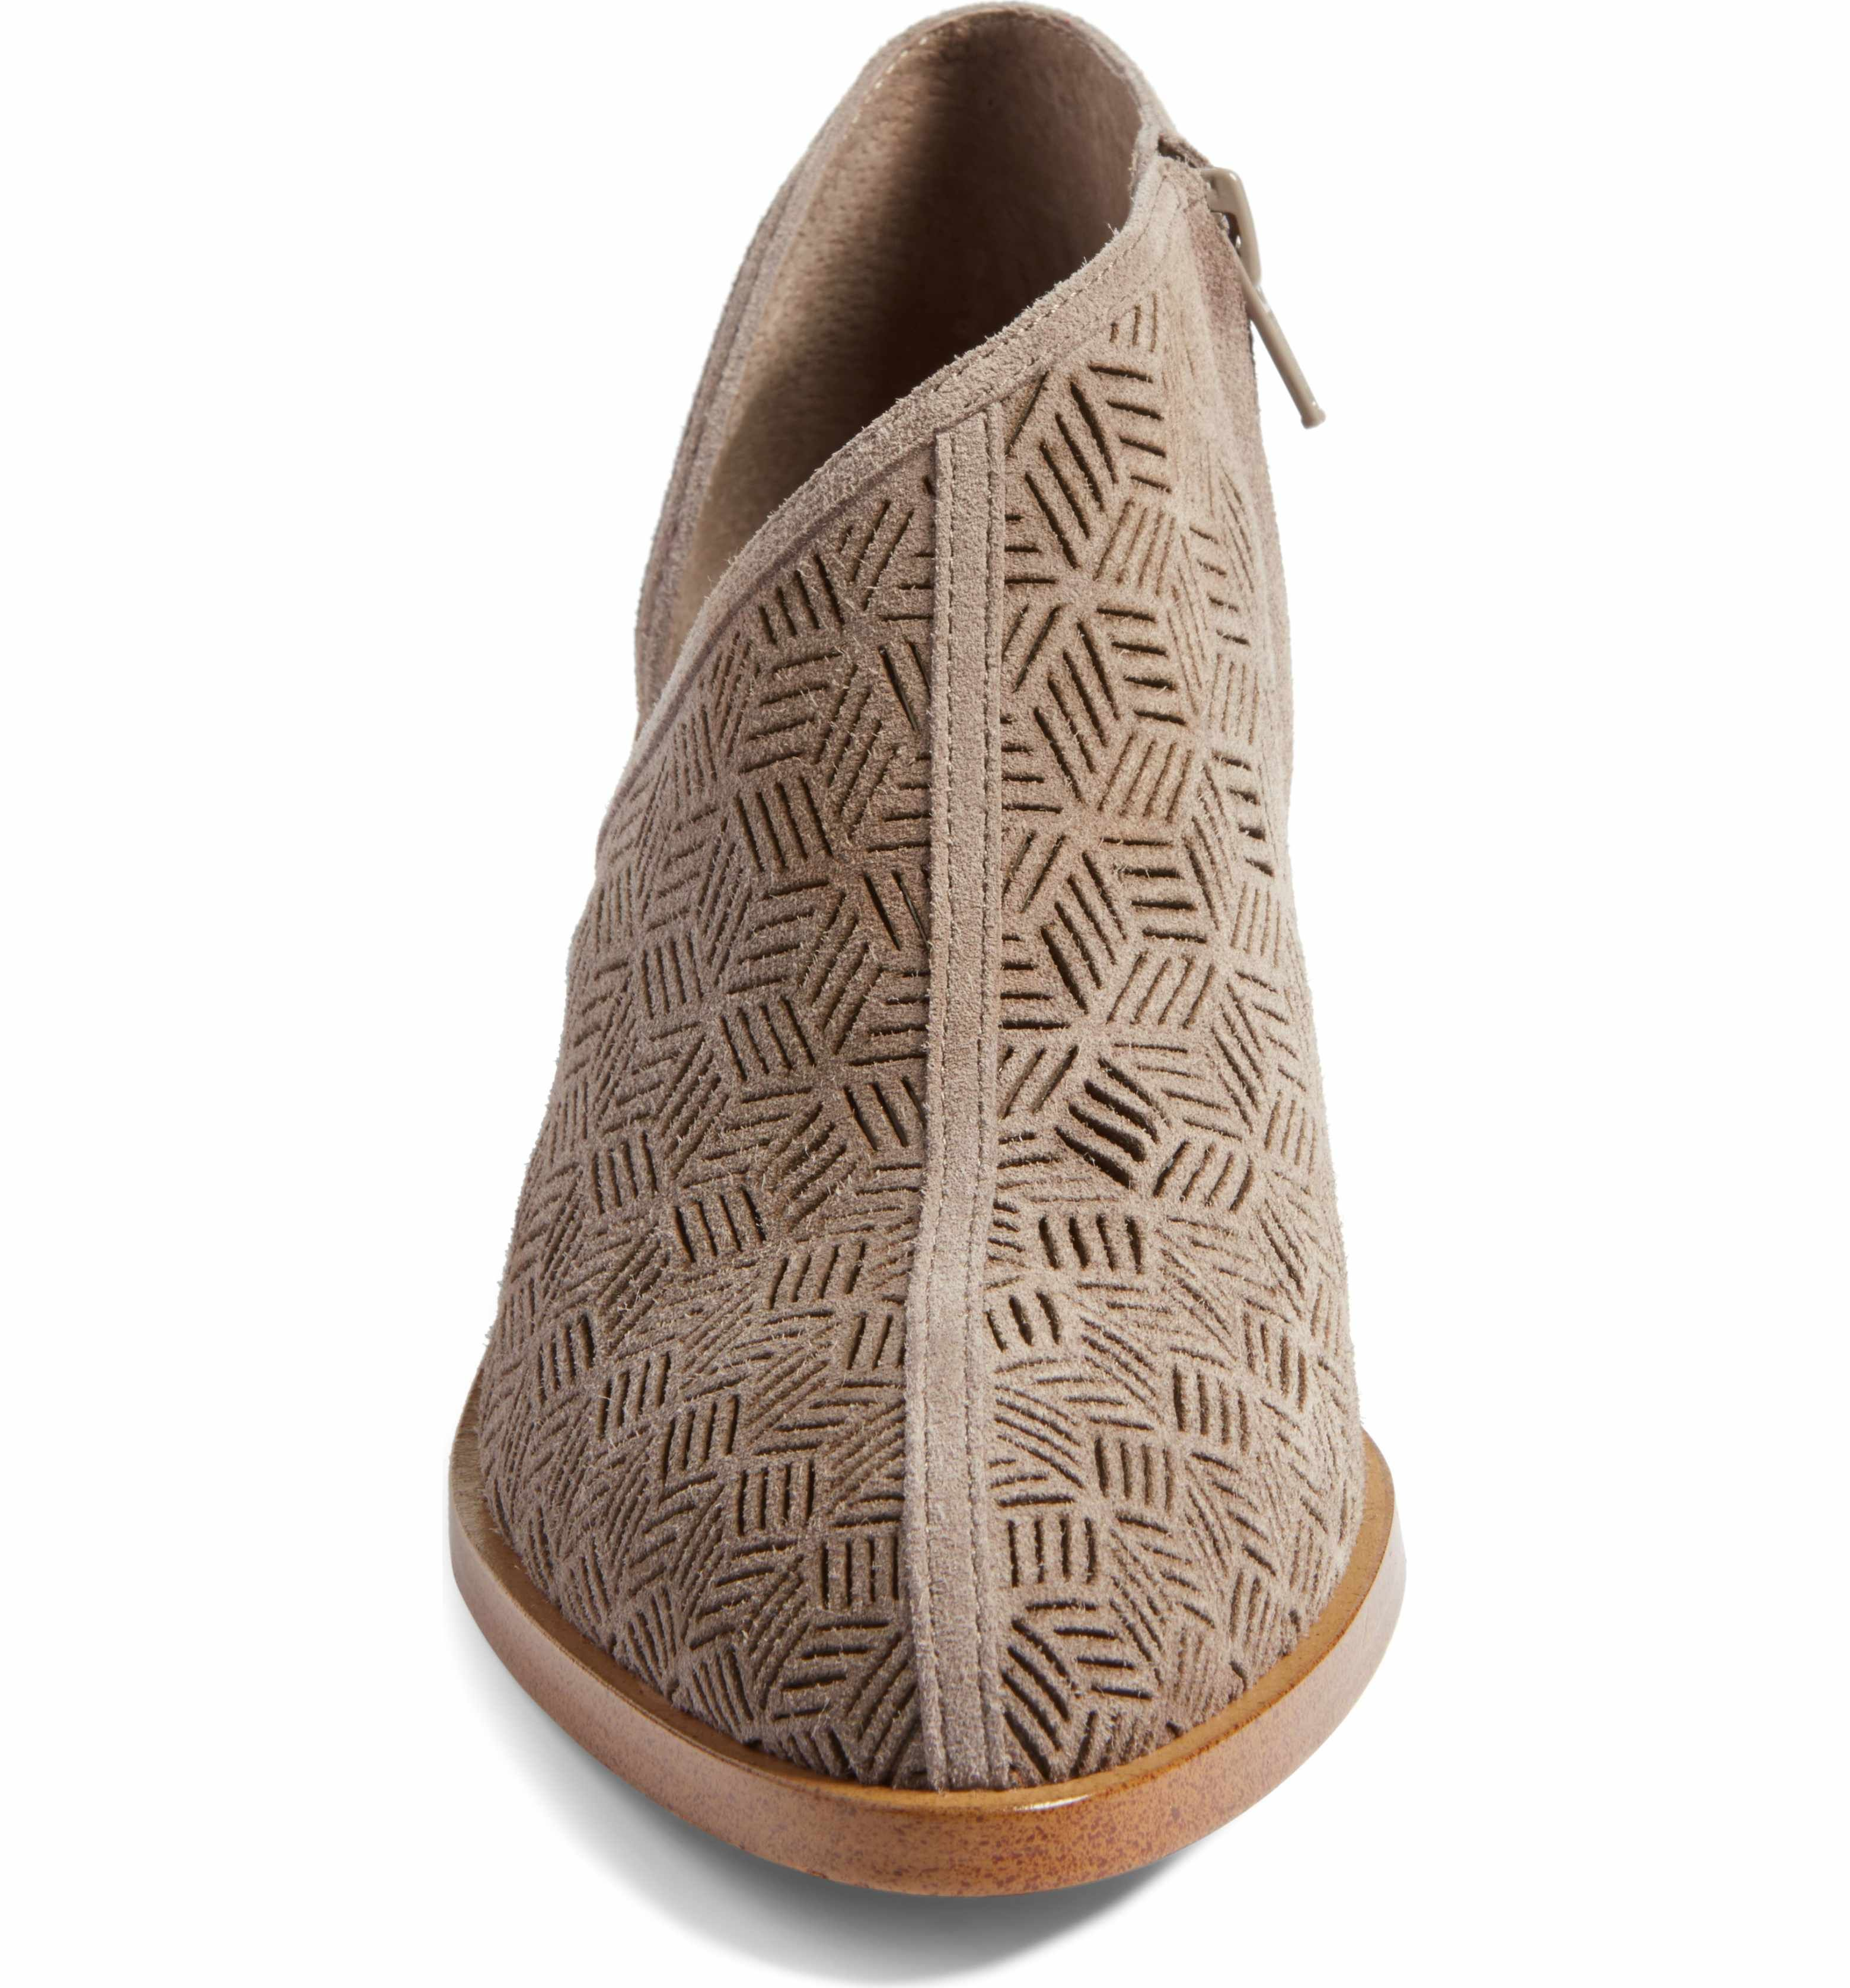 e9ab8ab8f15 Main Image - 1.STATE Iddah Perforated Cutaway Bootie (Women ...